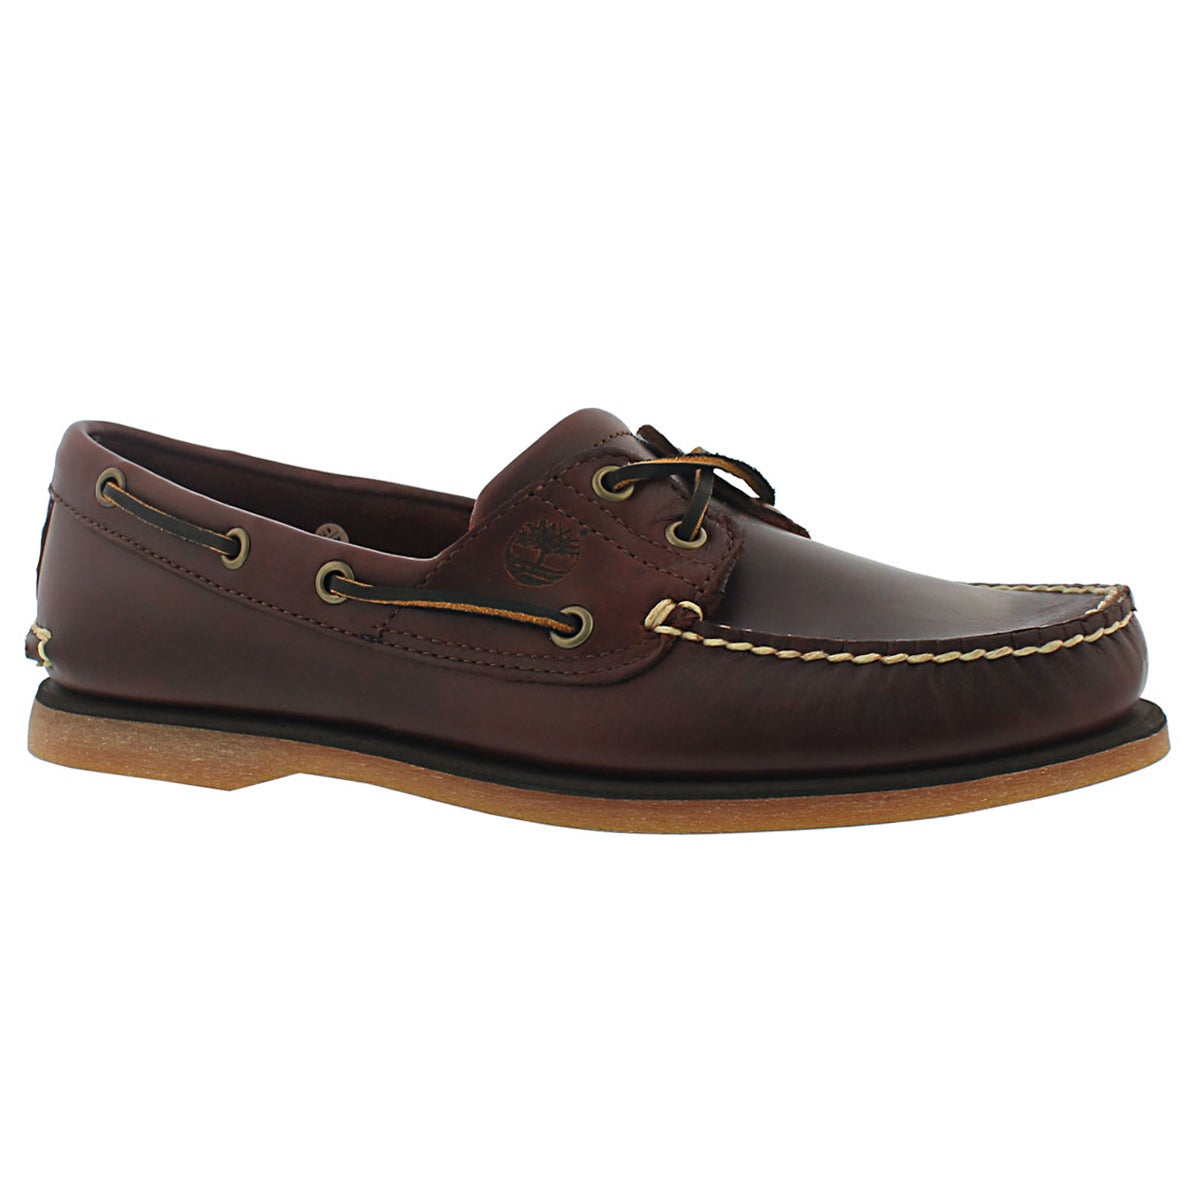 Men's CLASSIC BOAT rootbeer 2 eye boat shoes